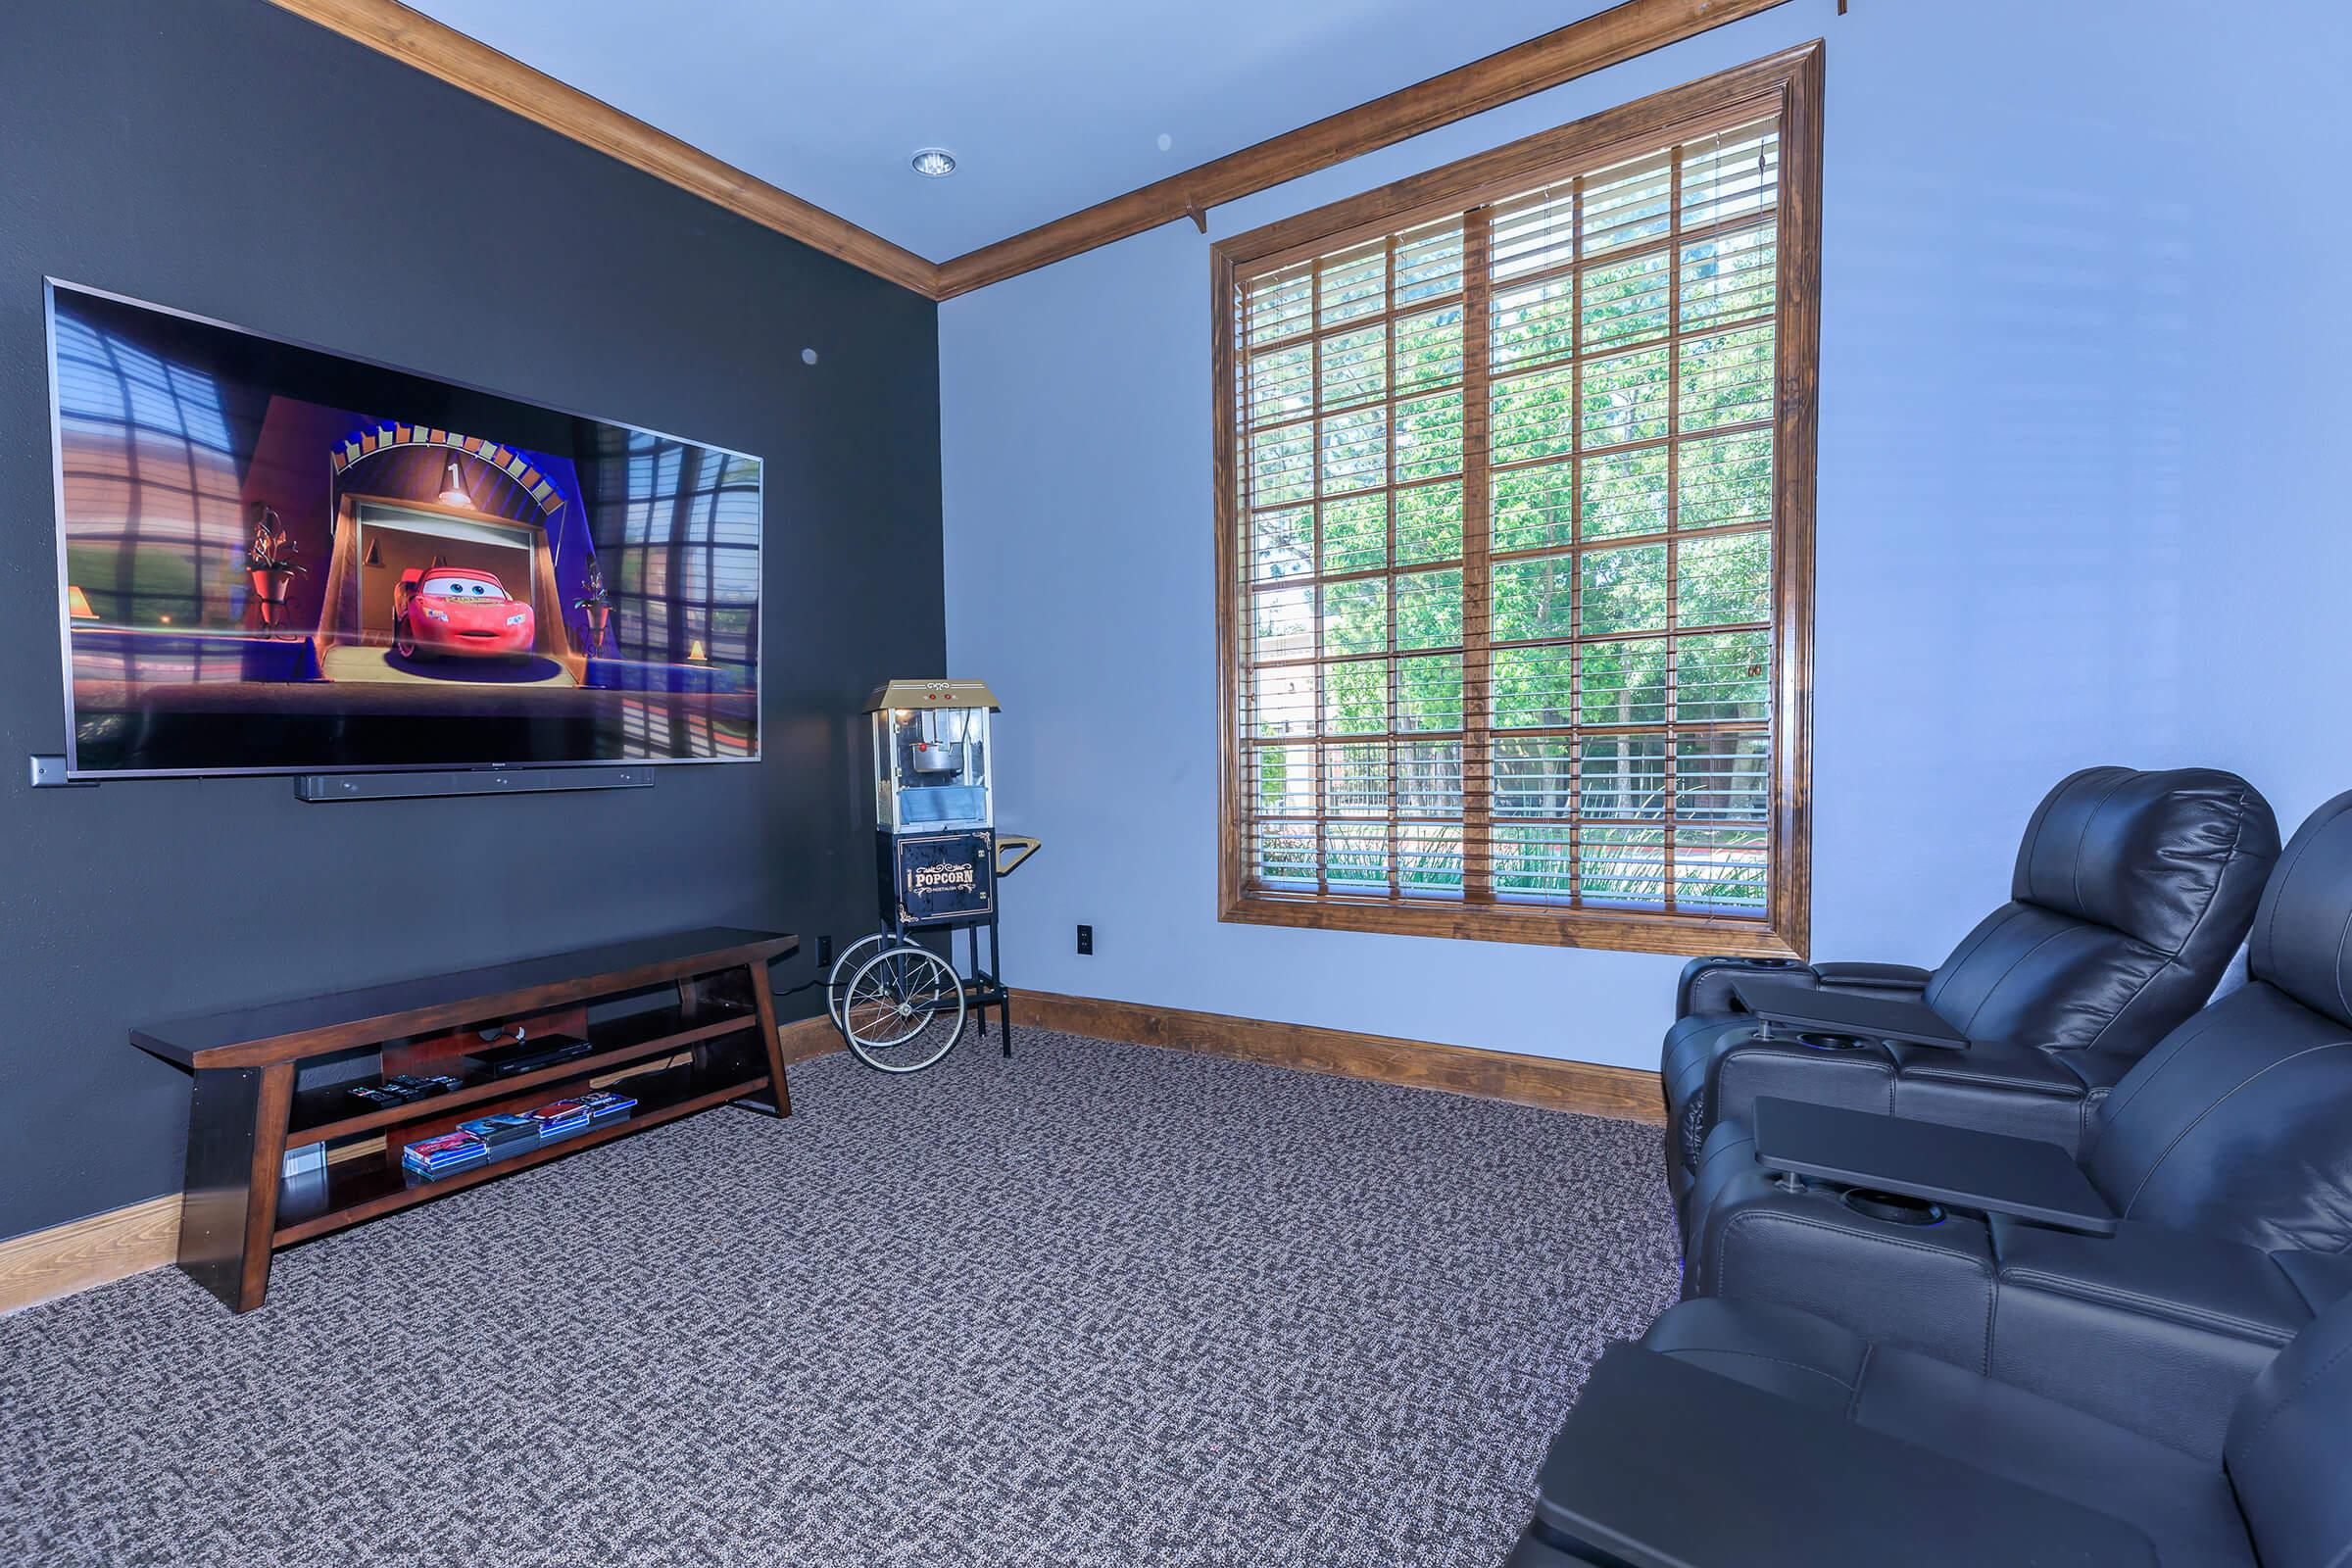 a living room with a television and a window